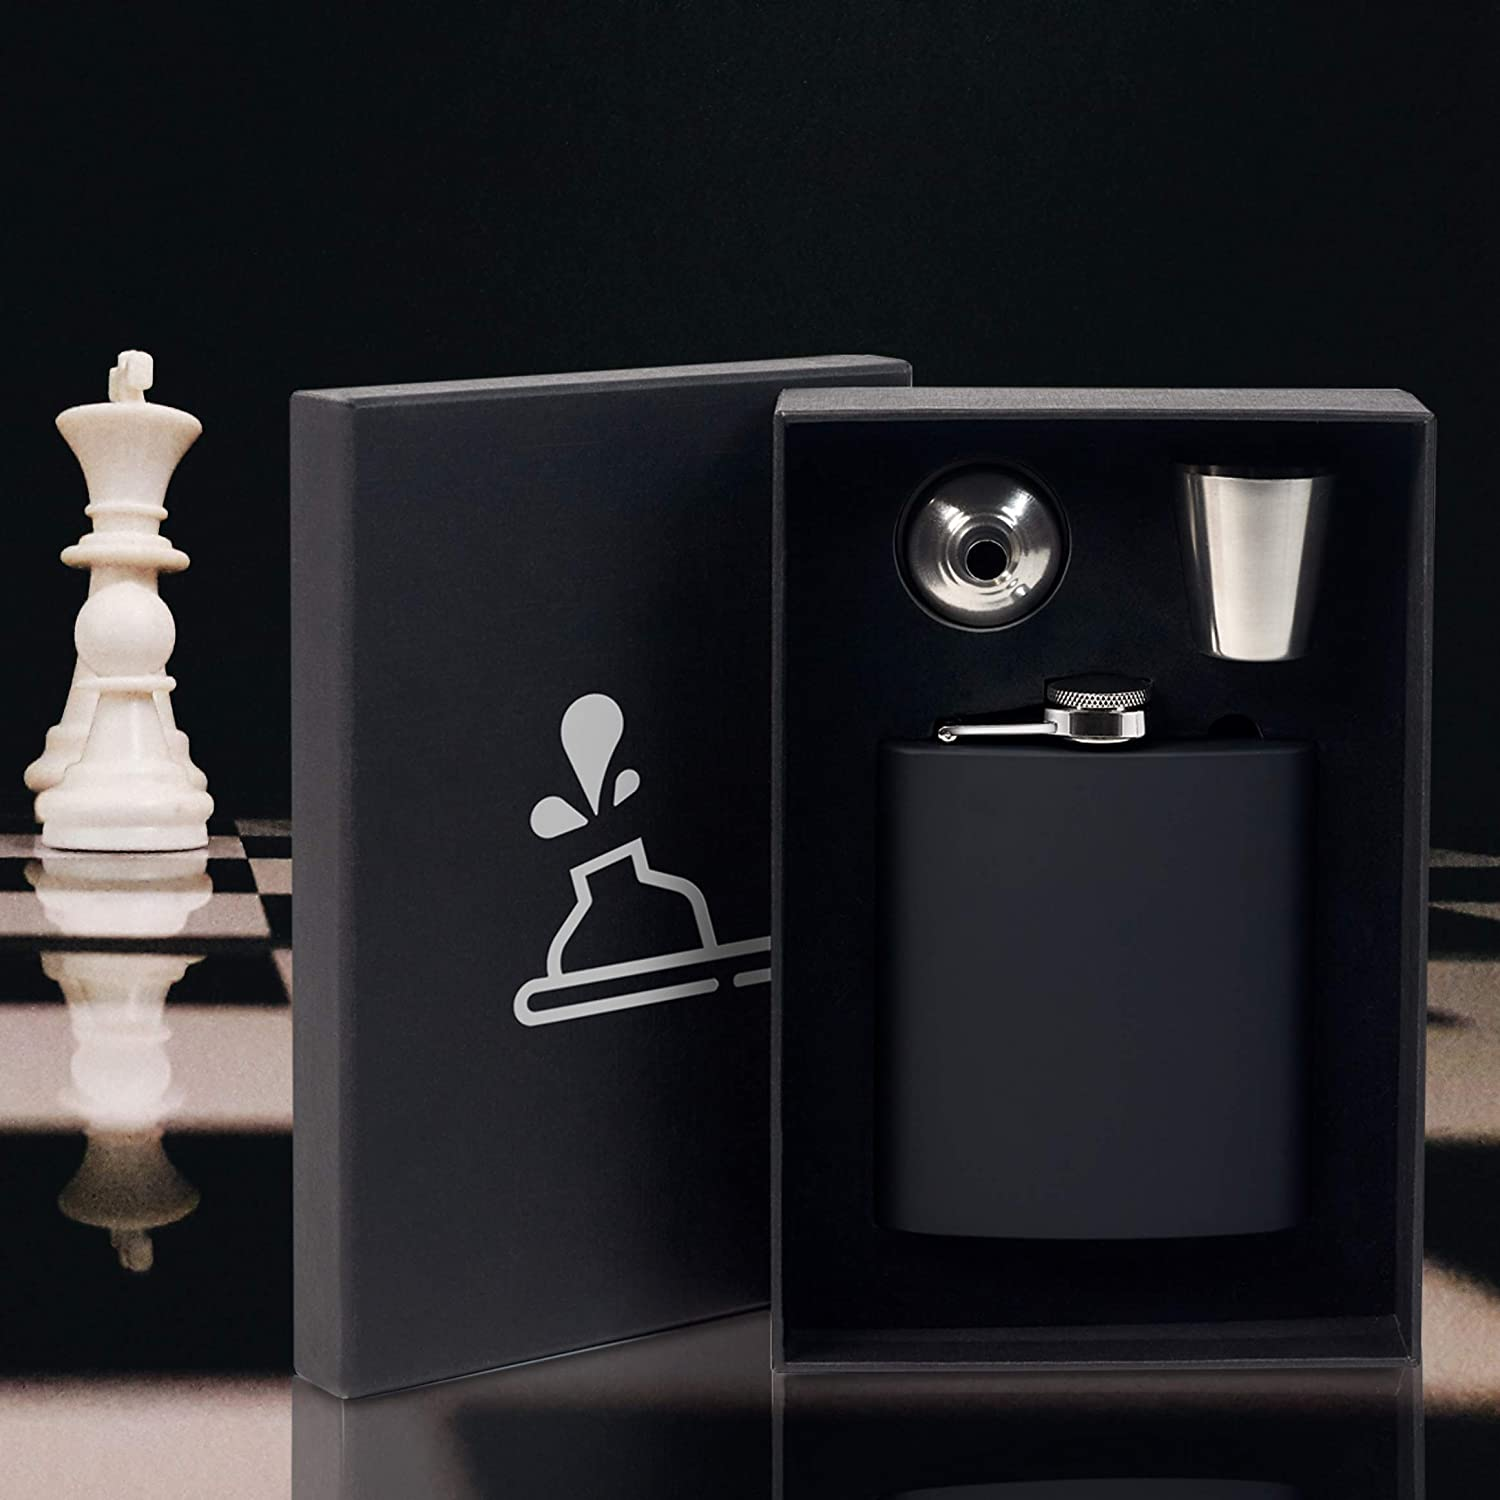 FunkyDrops Whiskey Flask for Liquor for Men and Women Black Hip Flask Made of Stainless Steel with Funnel and Shot Glass